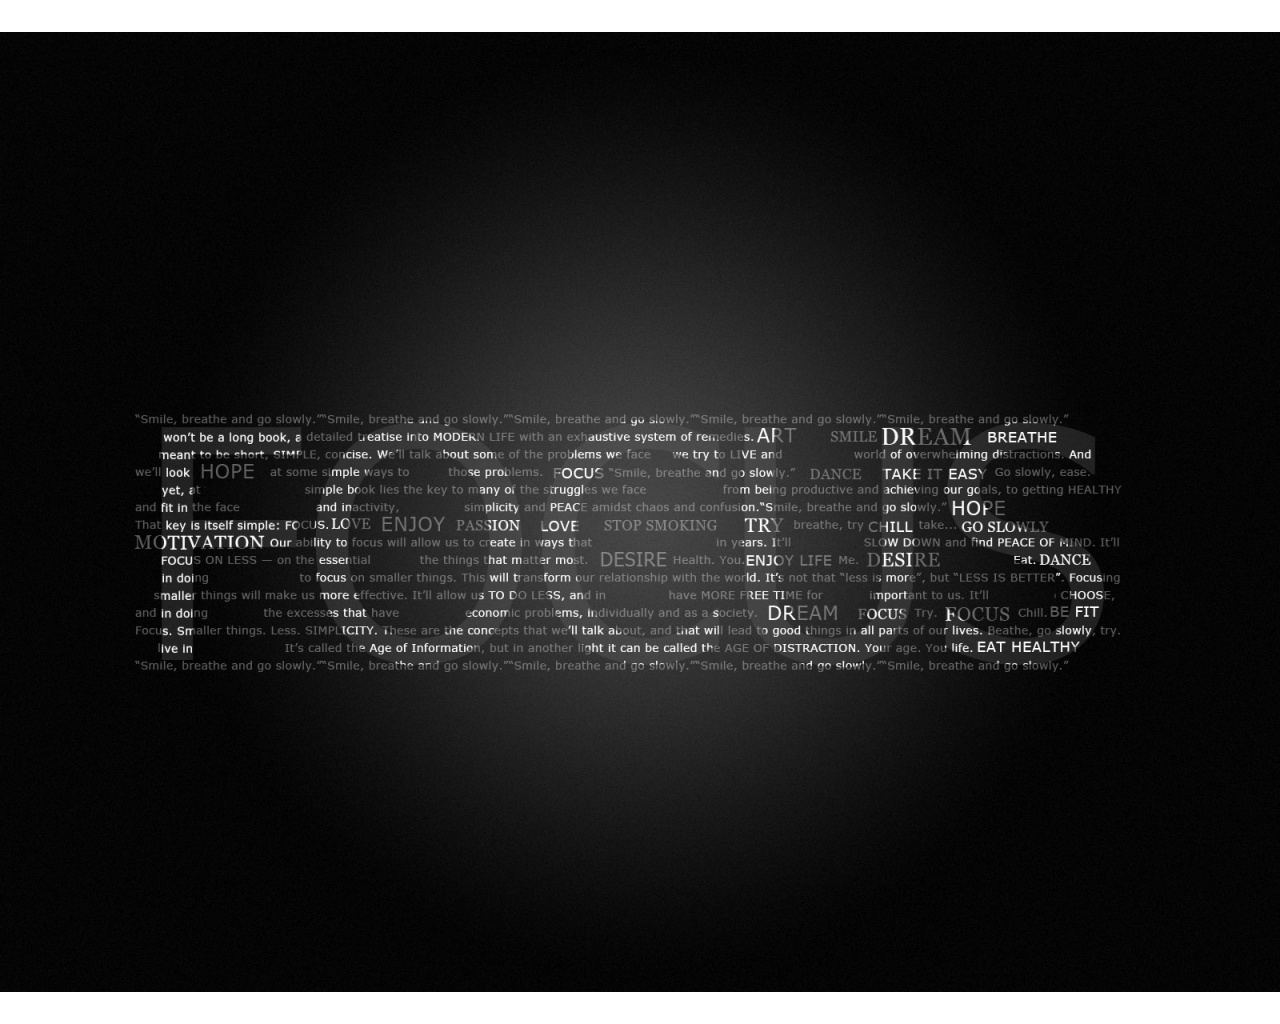 Wallpaper Focus >> Focus Wallpaper 1280x1024 75886